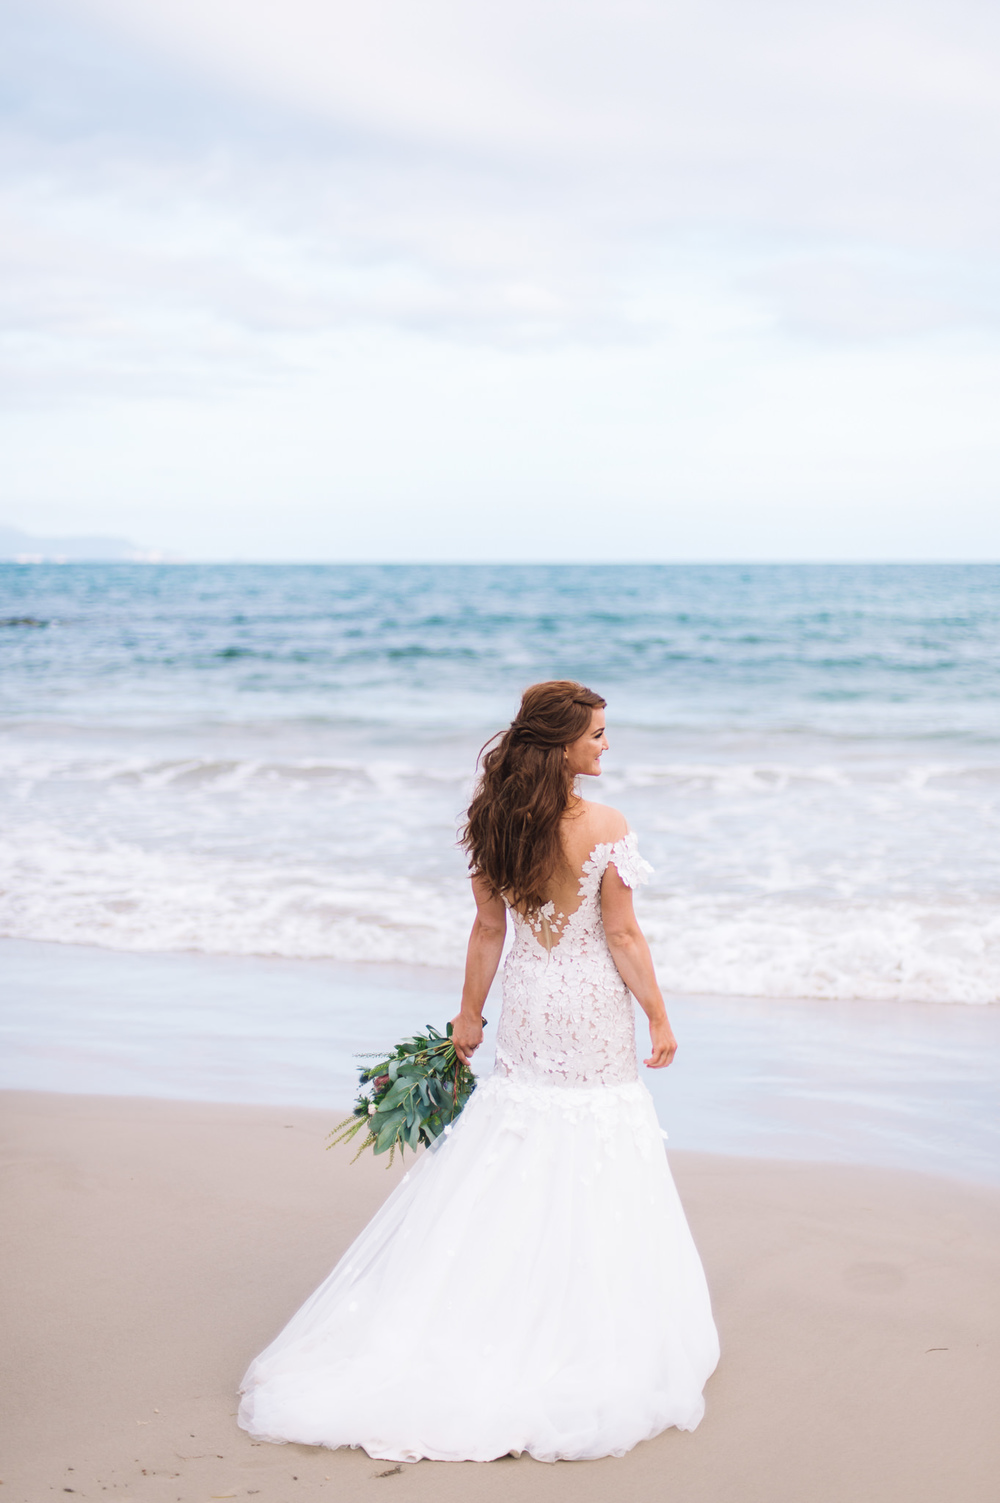 Beautiful Nurit Hen gown on Avalon Coastal Retreat's private beach